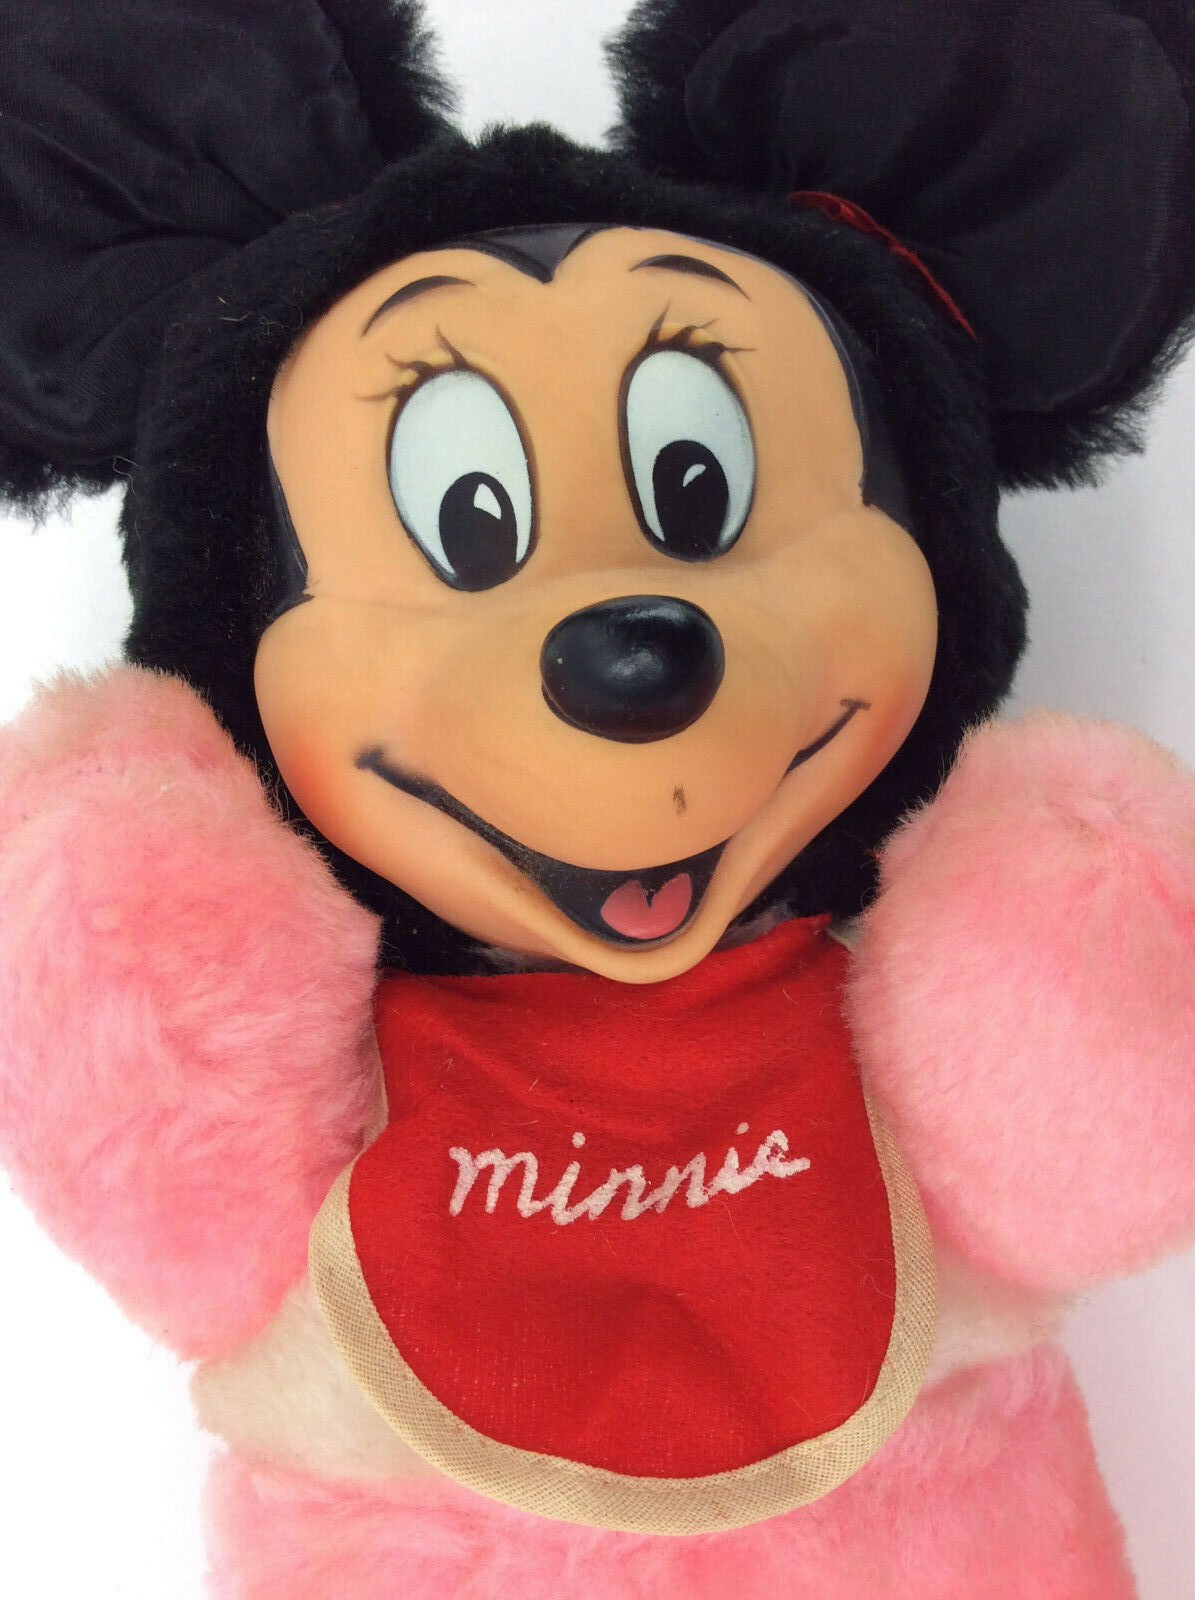 Minnie Mouse Pink Baby Bib Rubber Face Japan VTG Plush Stuffed Animal 13""